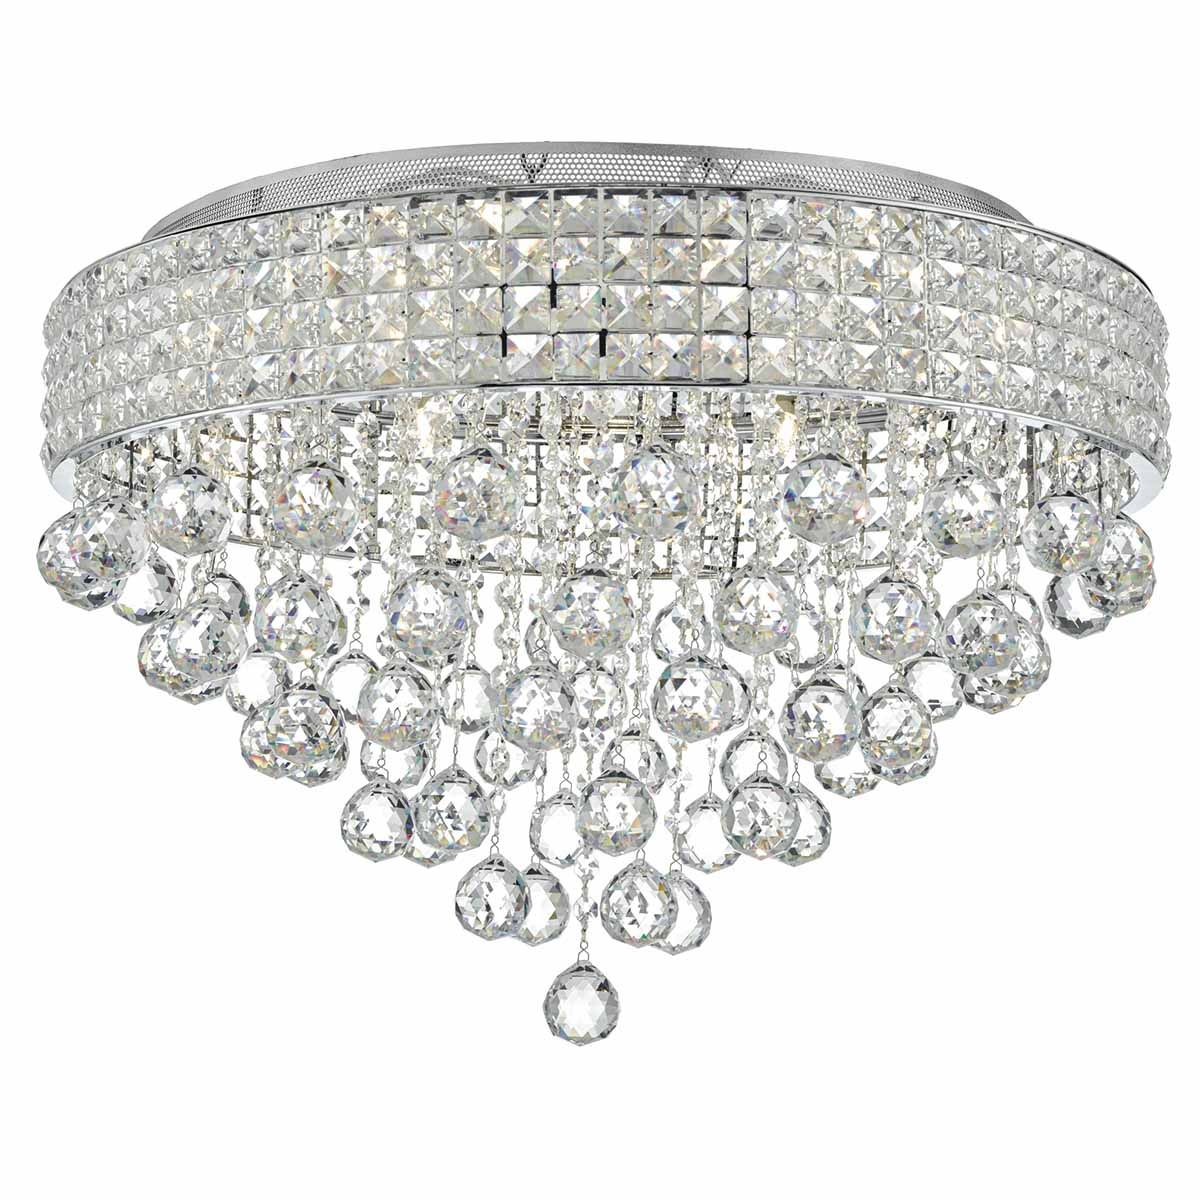 Matrix 9 Bulb Polished Chrome & Crystal Flush Ceiling Light